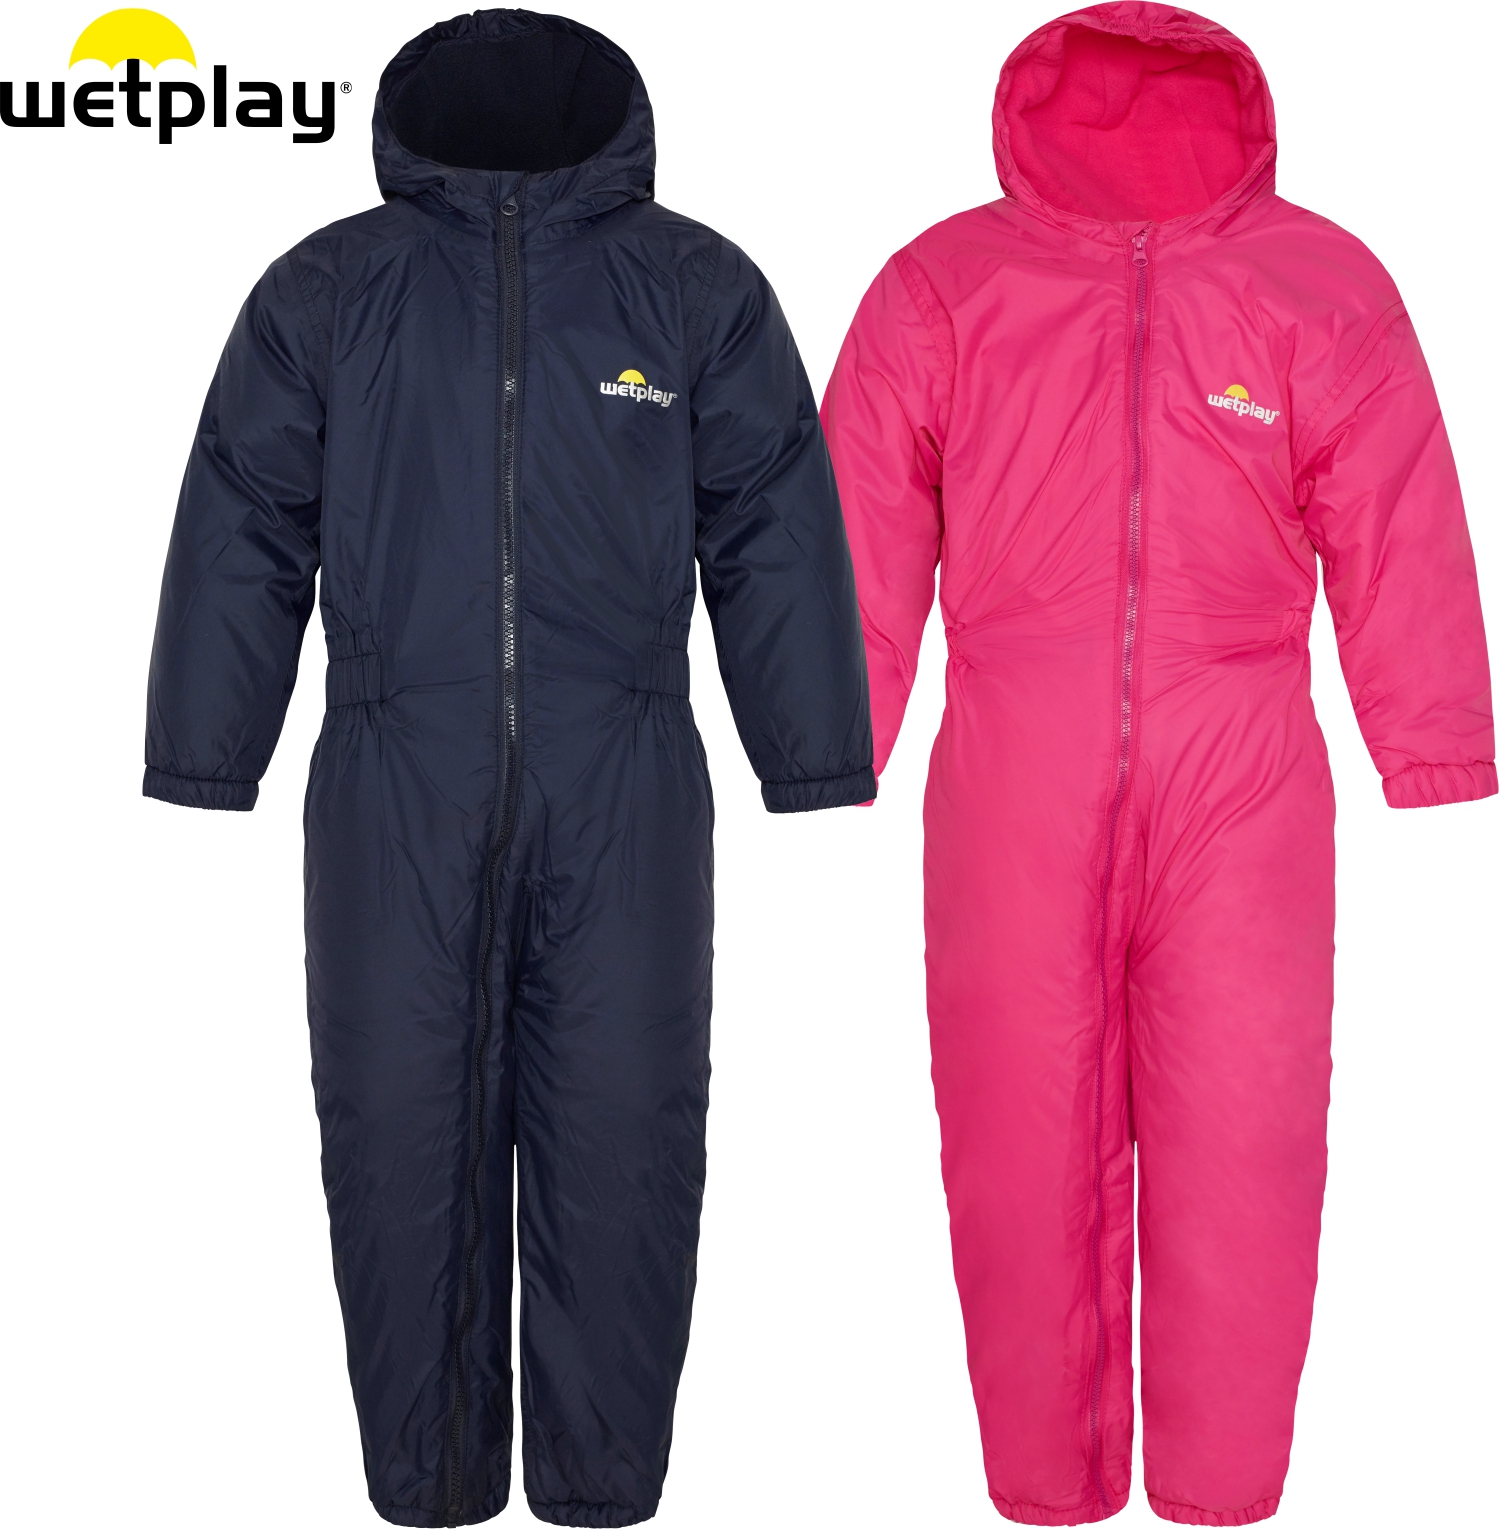 Wetplay Padded SnowSuit - £24.95